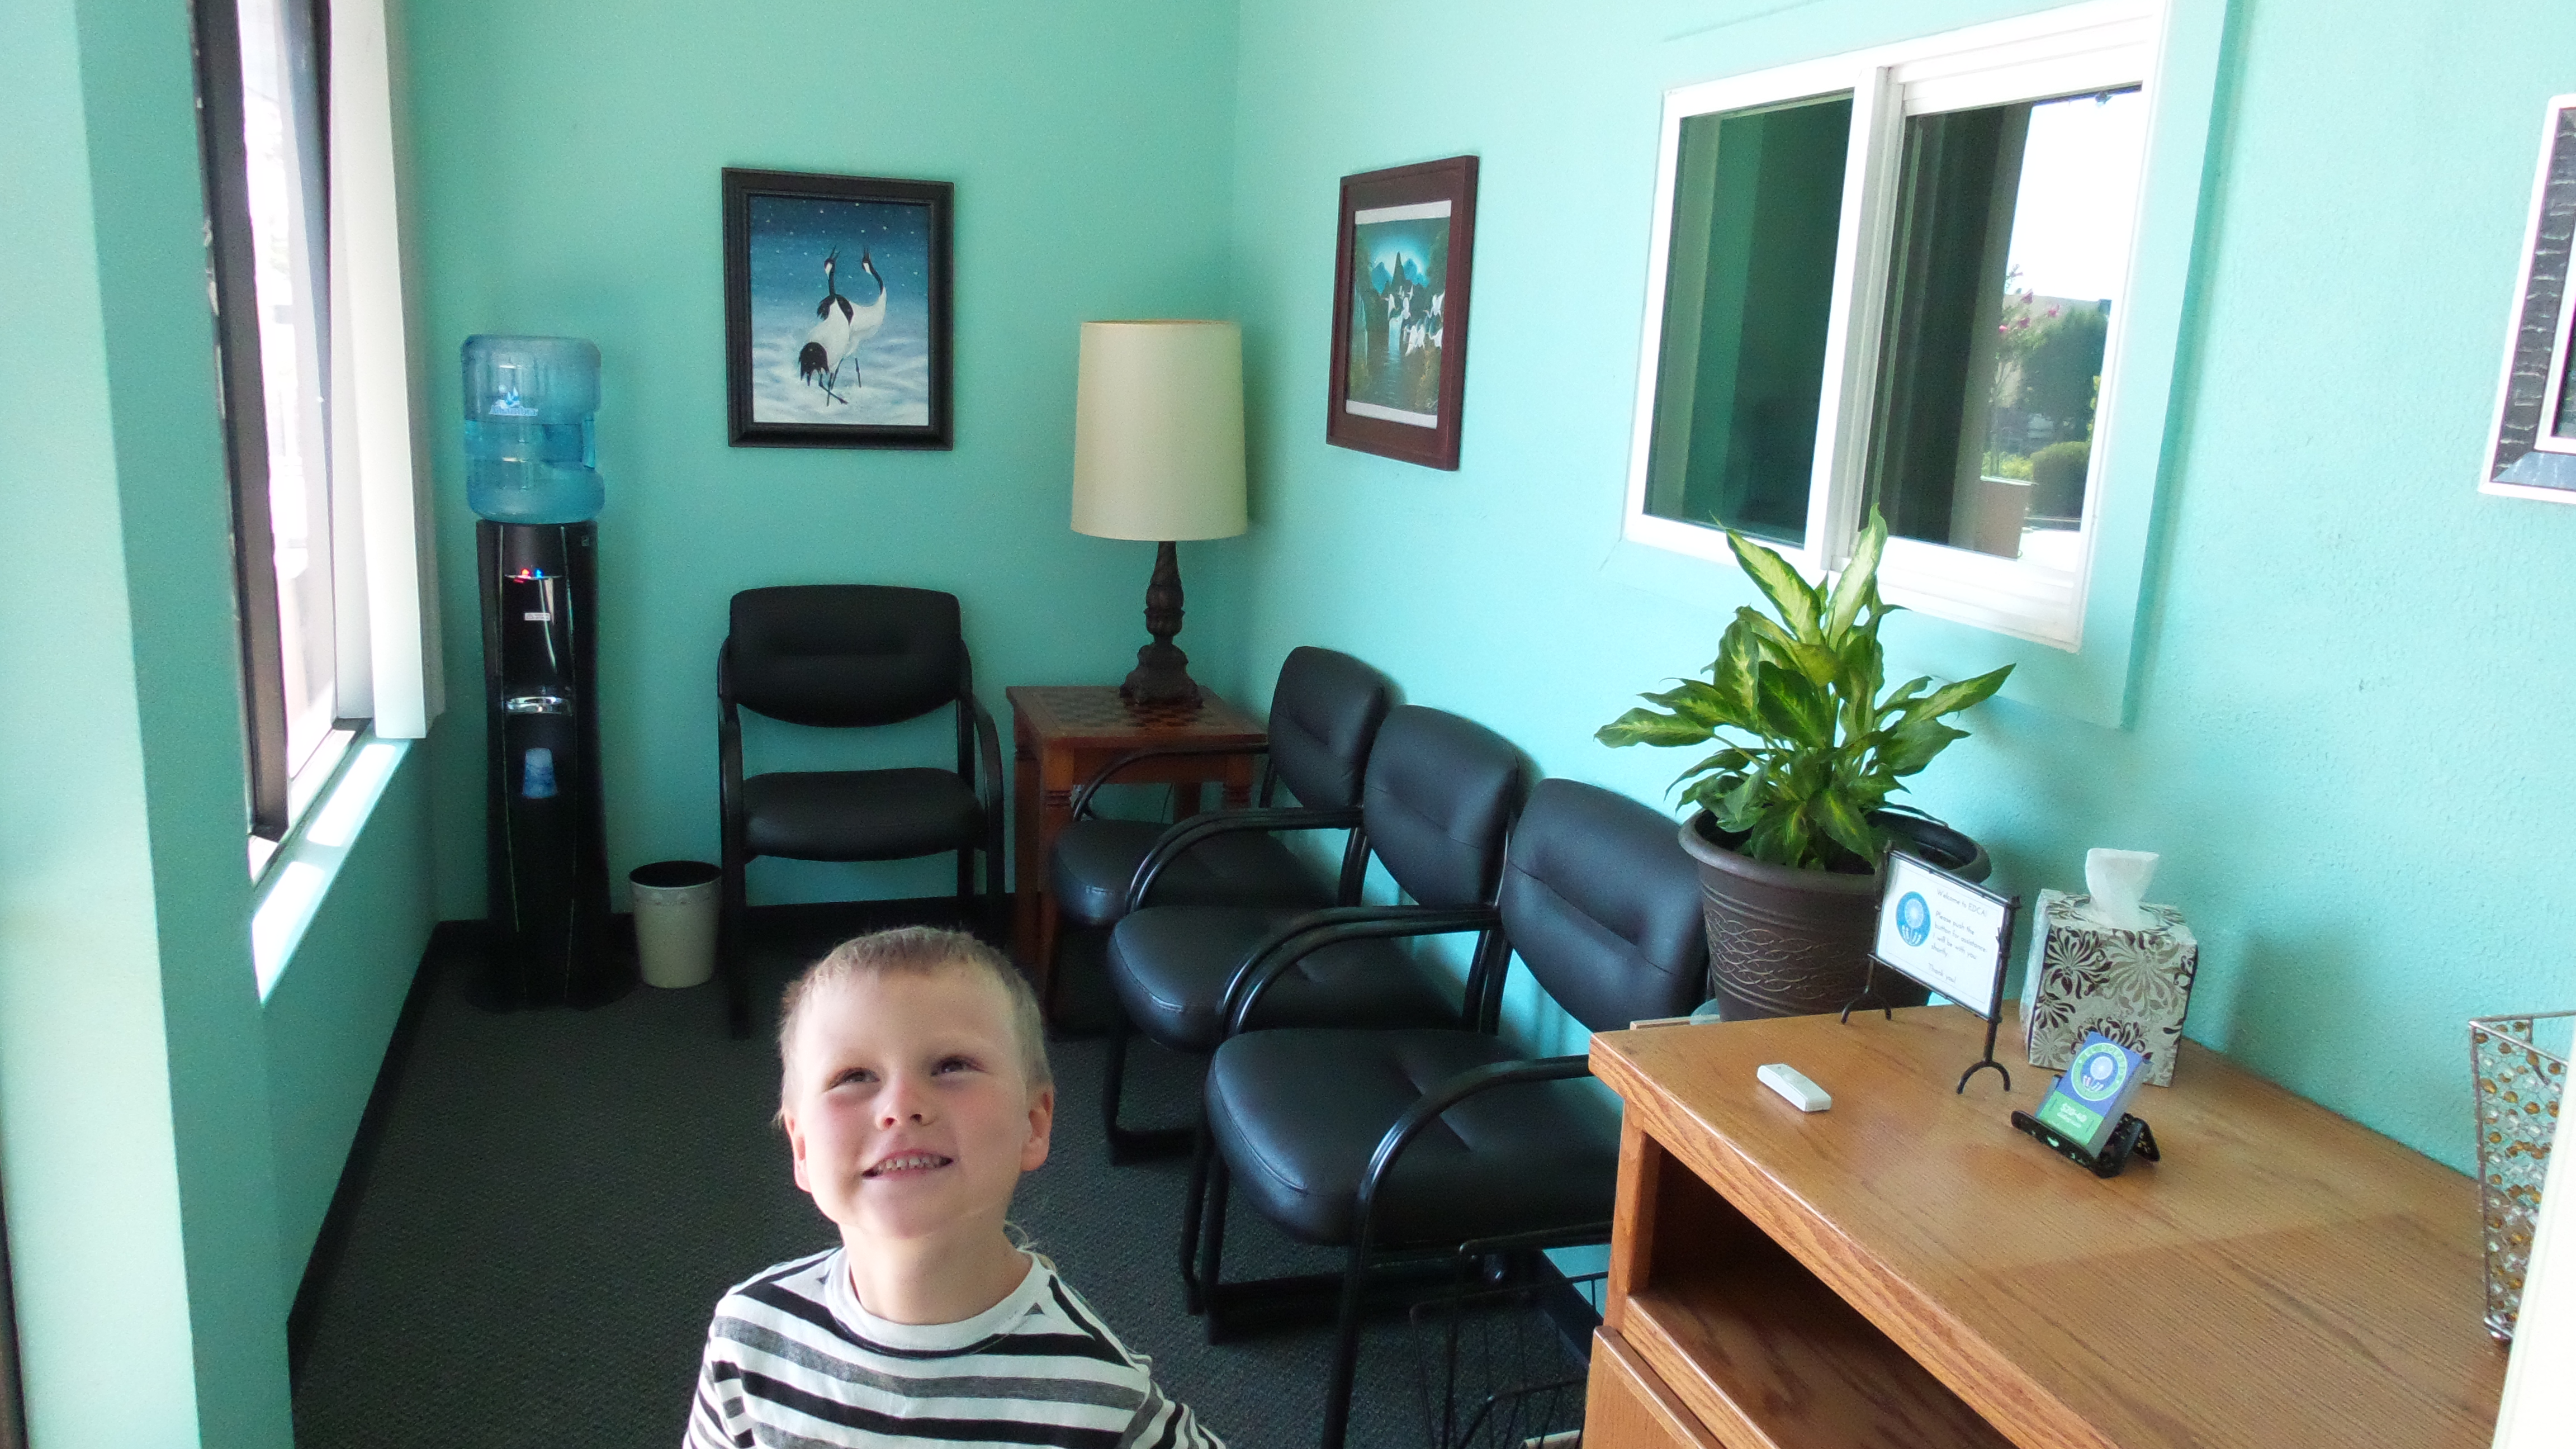 Affordable acupuncture just minutes from El Dorado Hills